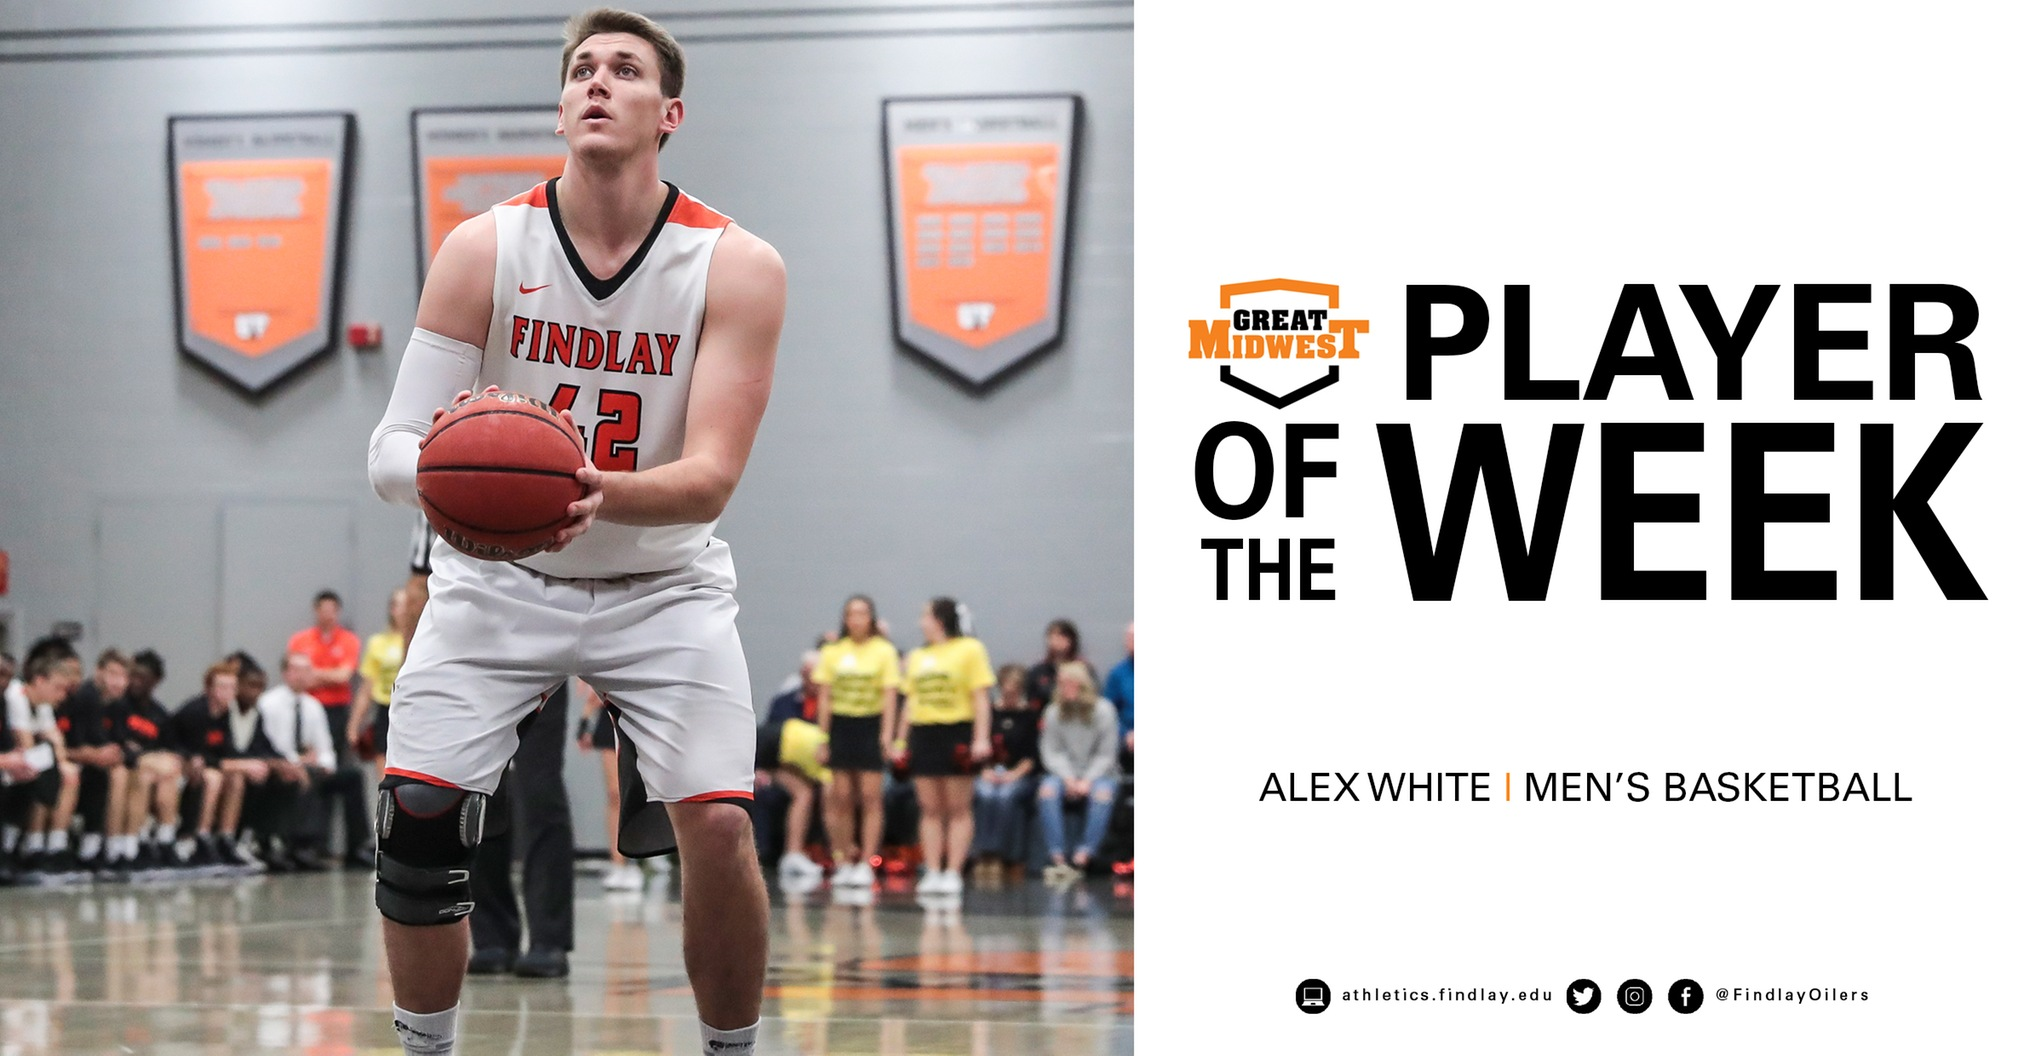 White Named Great Midwest Player of the Week